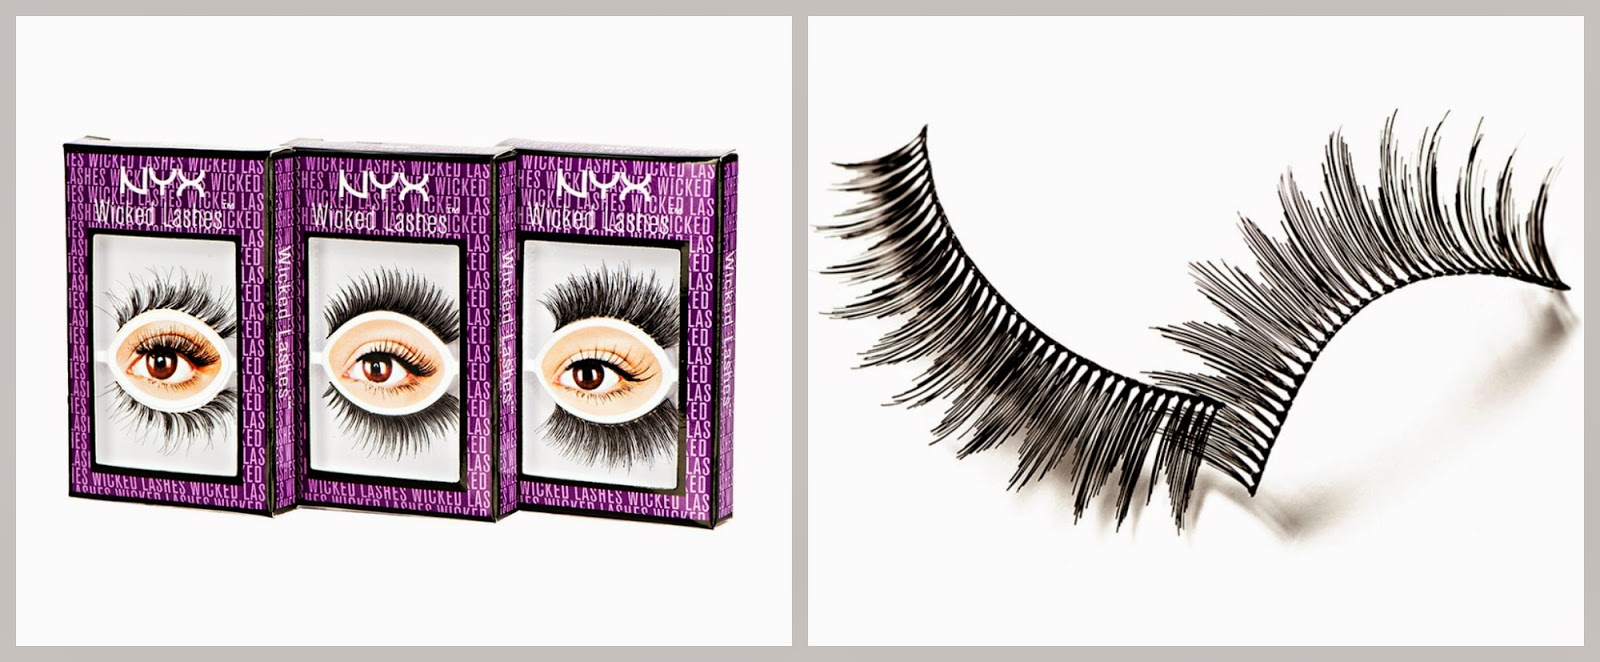 cdc67ef406f NEW! NYX Wicked Lashes |Gussy Up!